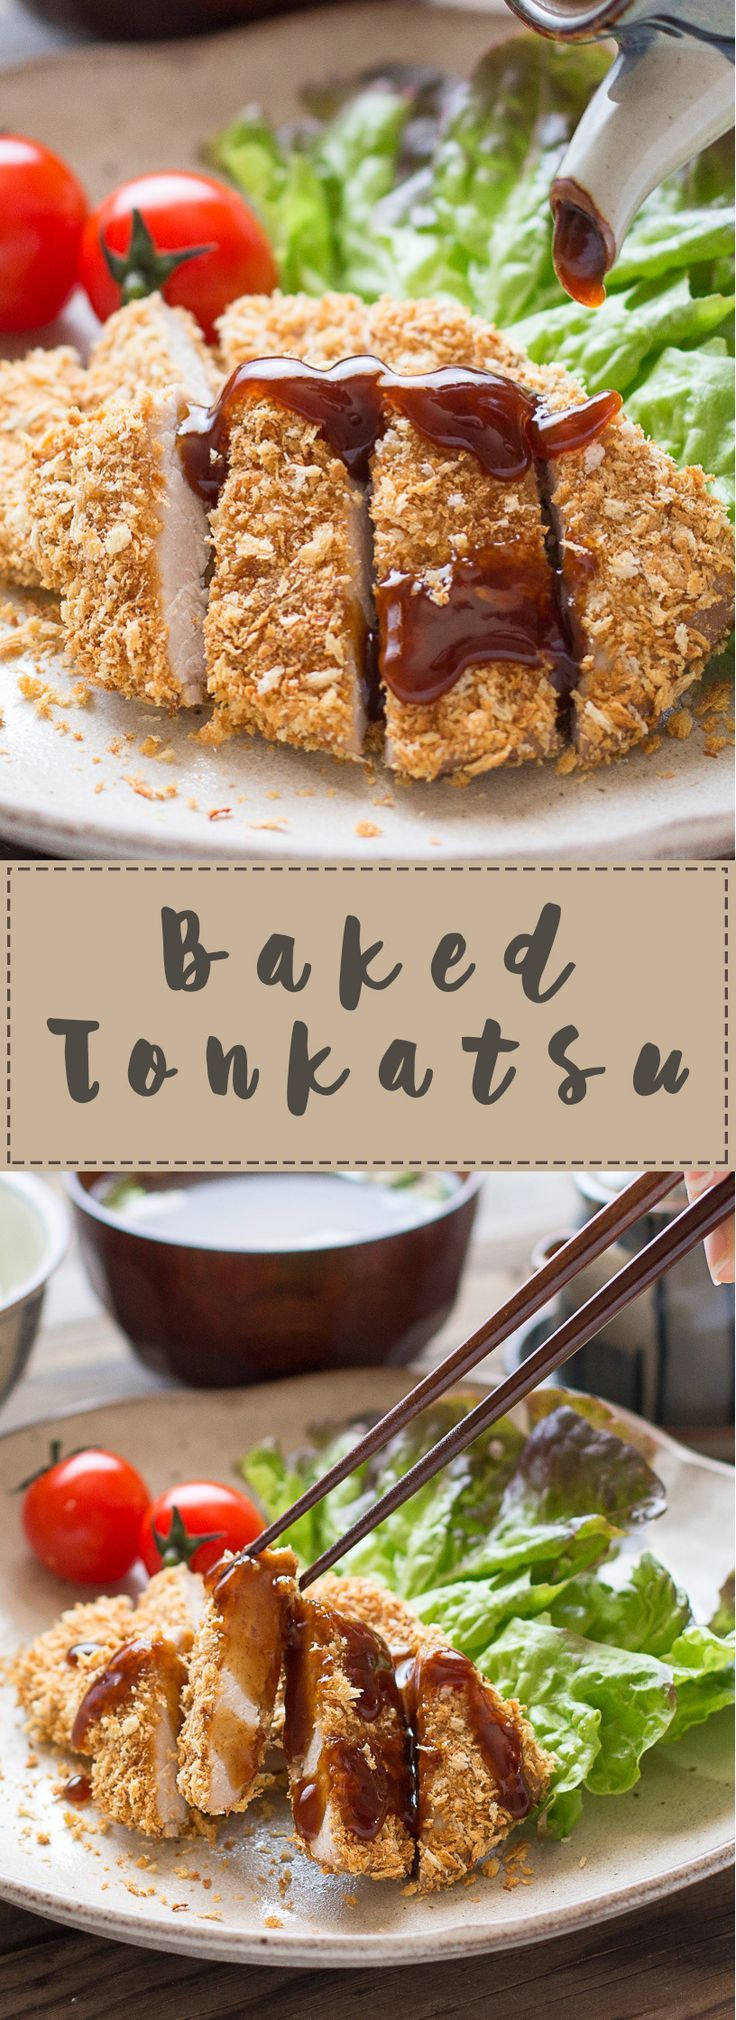 Elevate thinly sliced pork to a whole new level! This Tonkatsu recipe is coated in Panko Bread Crumbs, then baked in the oven instead of traditionally deep fried, for much healthier results.